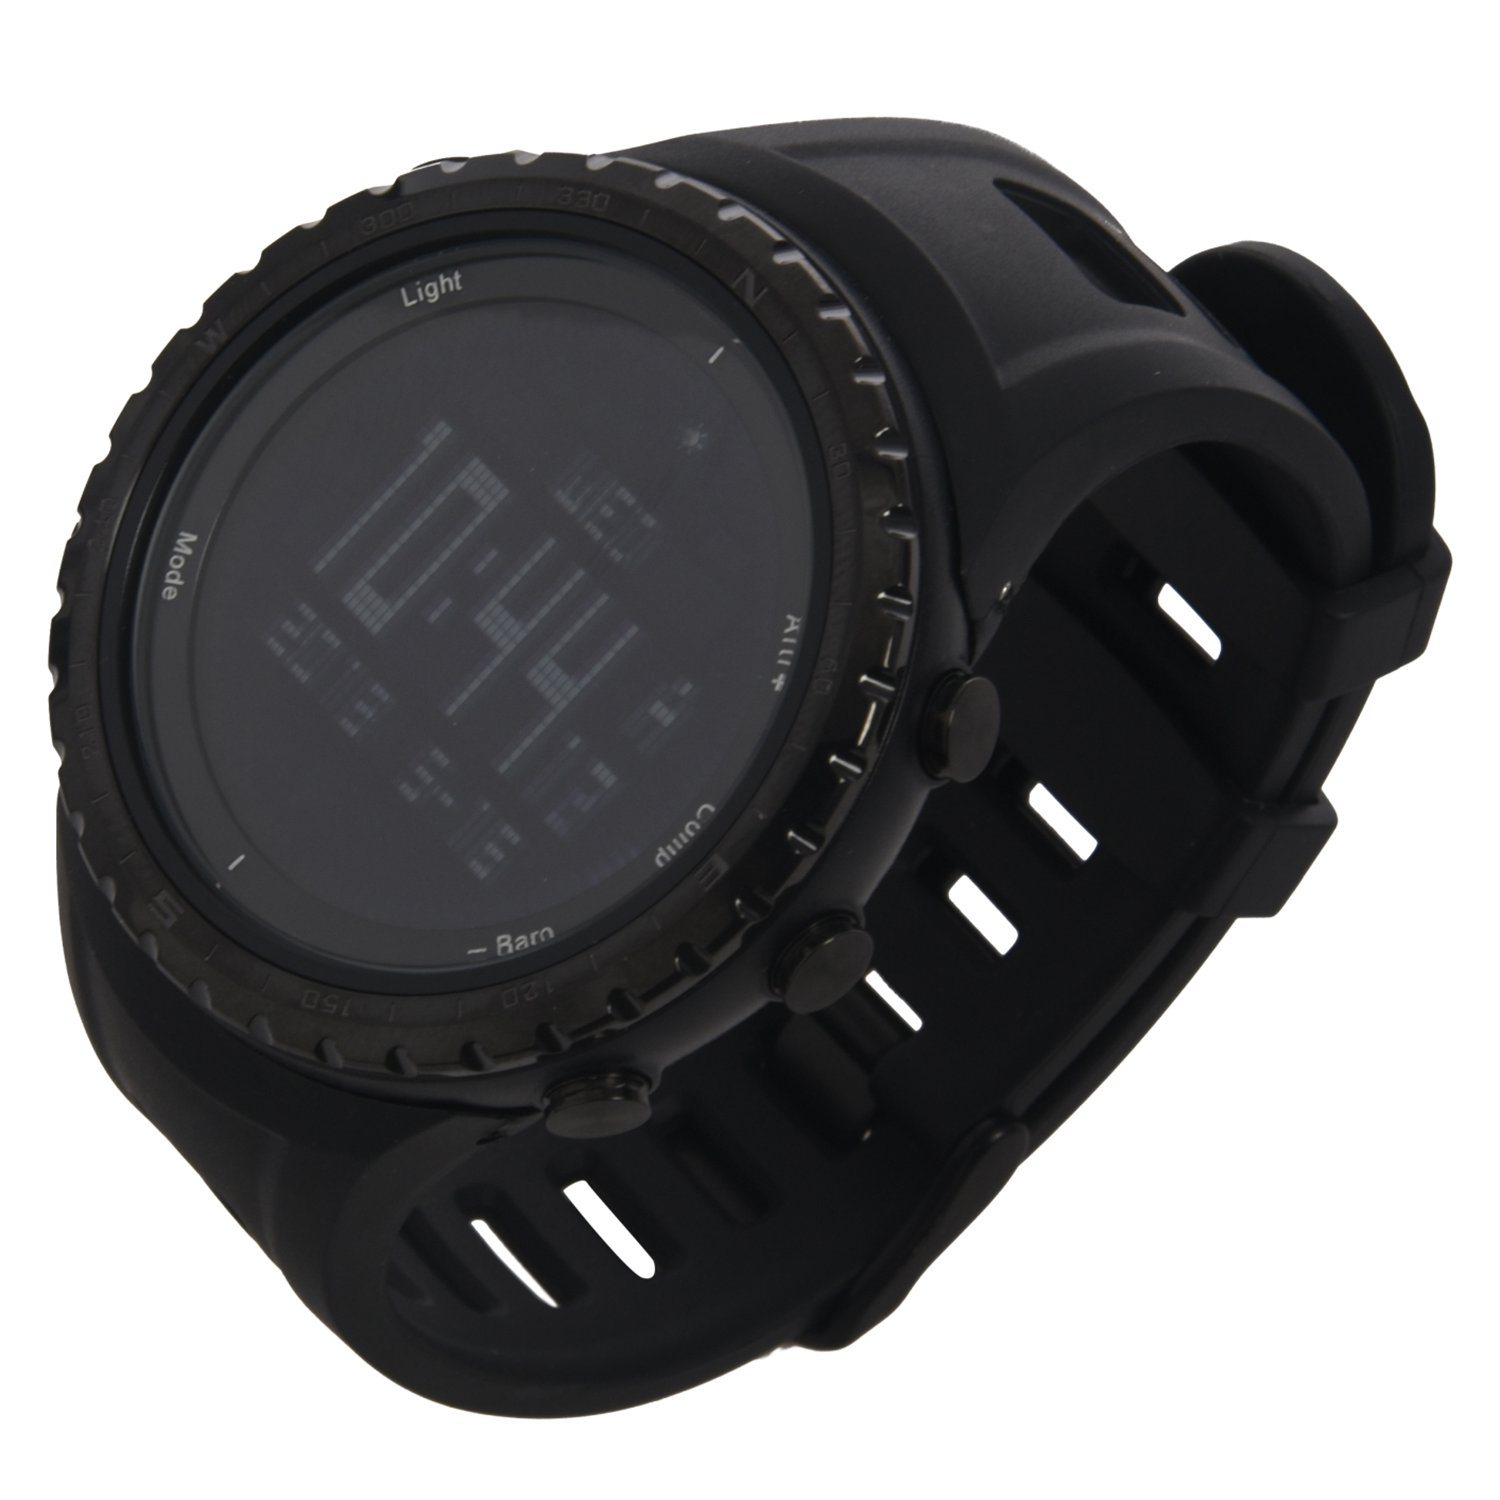 SunRoad FR803 Outdoor Men Digital Bluetooth Smart Sports Watch for Android 4.0 and Apple iOS 7.0SunRoad FR803 Outdoor Men Digital Bluetooth Smart Sports Watch for Android 4.0 and Apple iOS 7.0